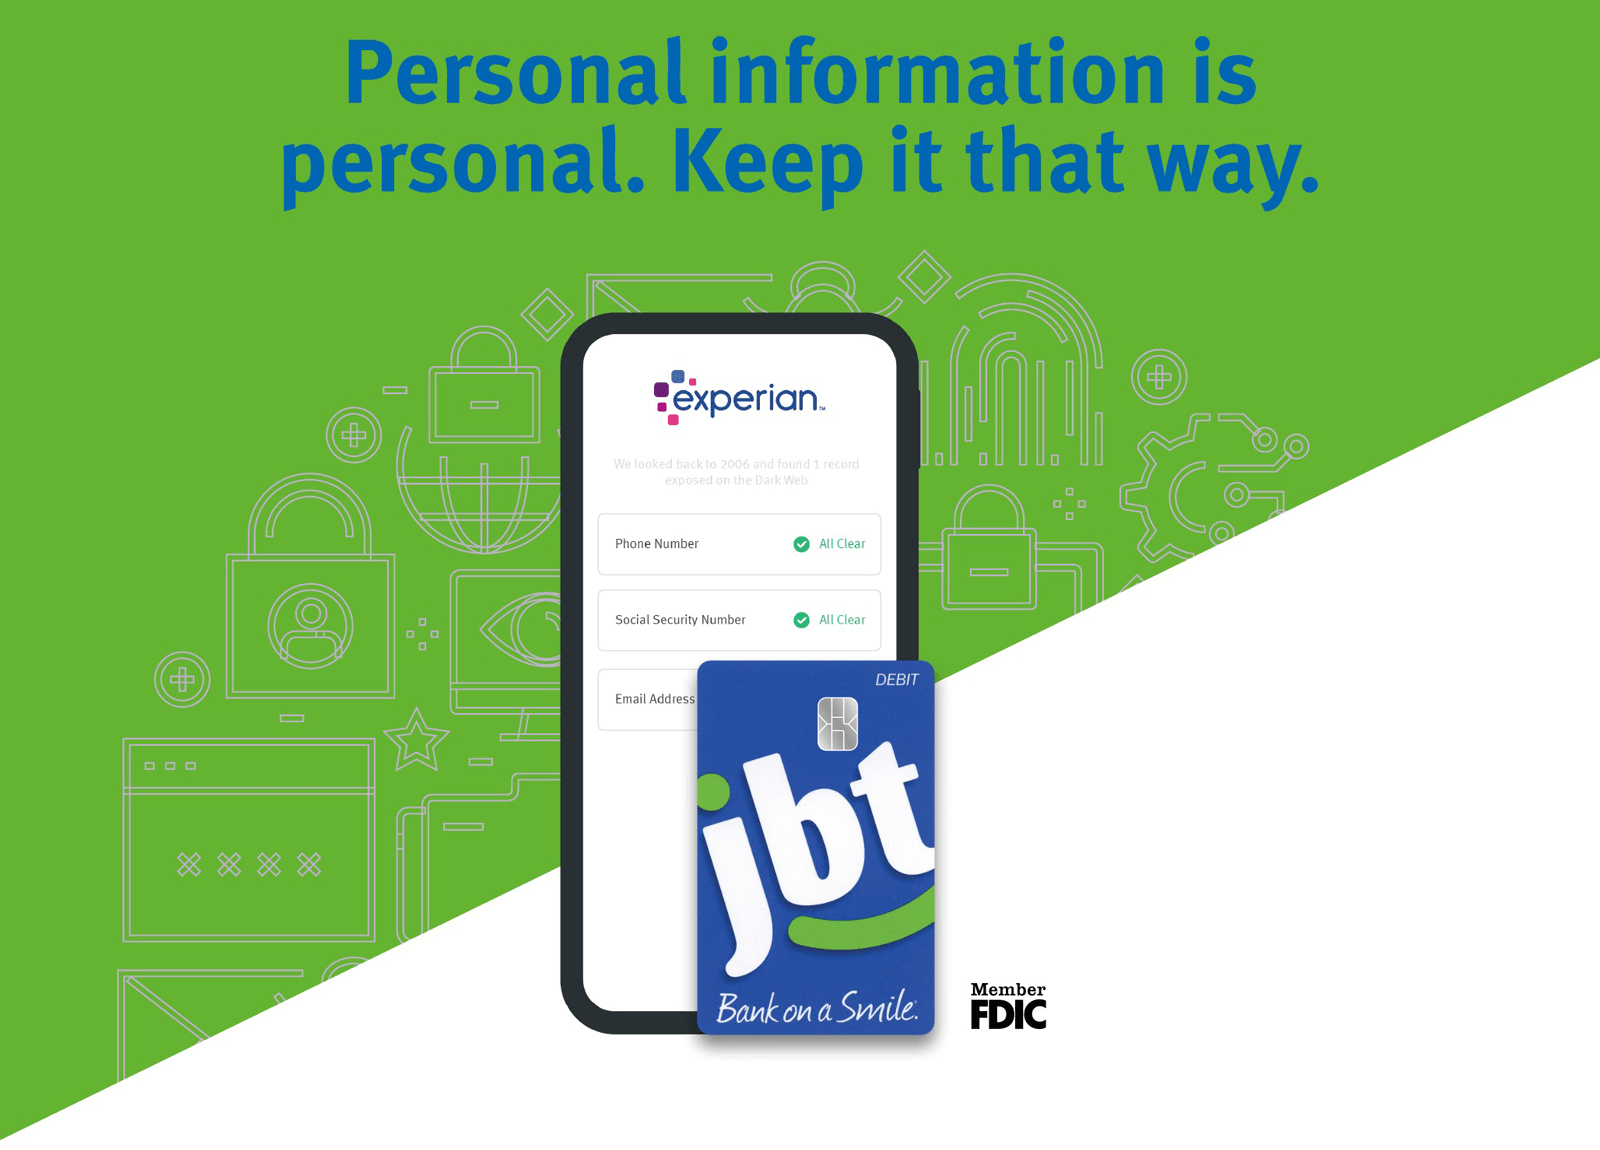 Personal information is personal. Keep it that way.